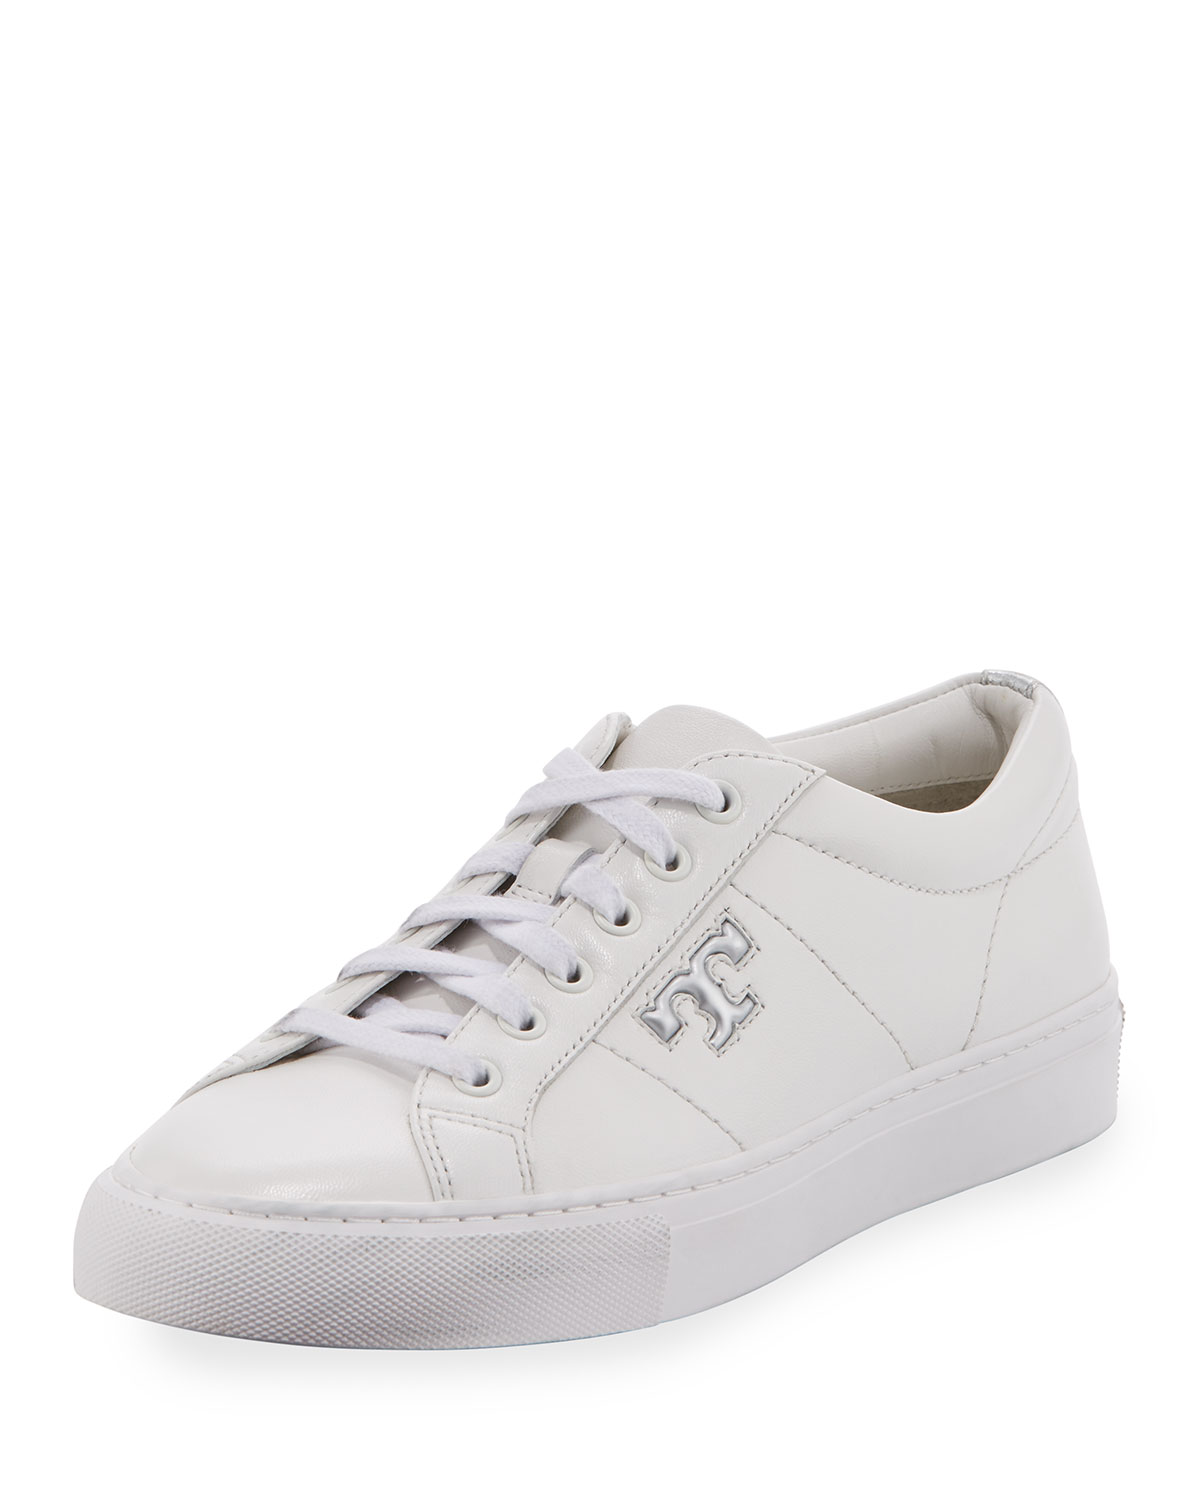 57fb649b36ed01 Tory Burch Chace Leather Low-Top Sneaker